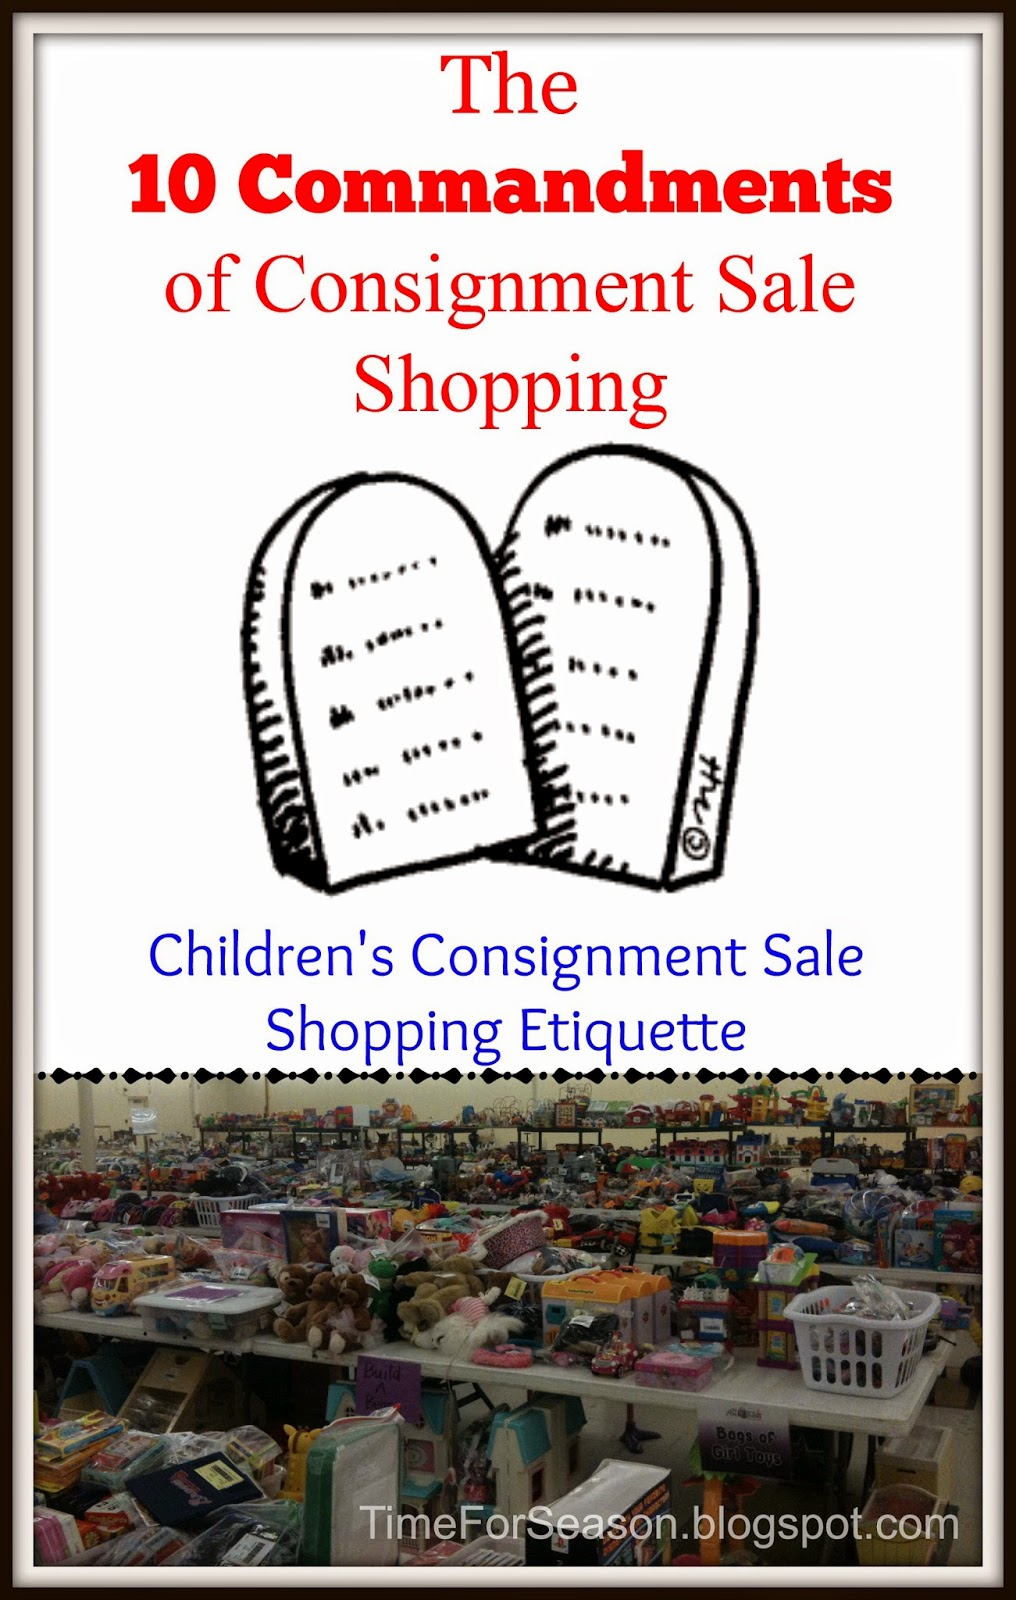 http://timeforseason.blogspot.com/2014/08/10-commandments-of-childrens-consignment-sale-shopping-etiqette.html